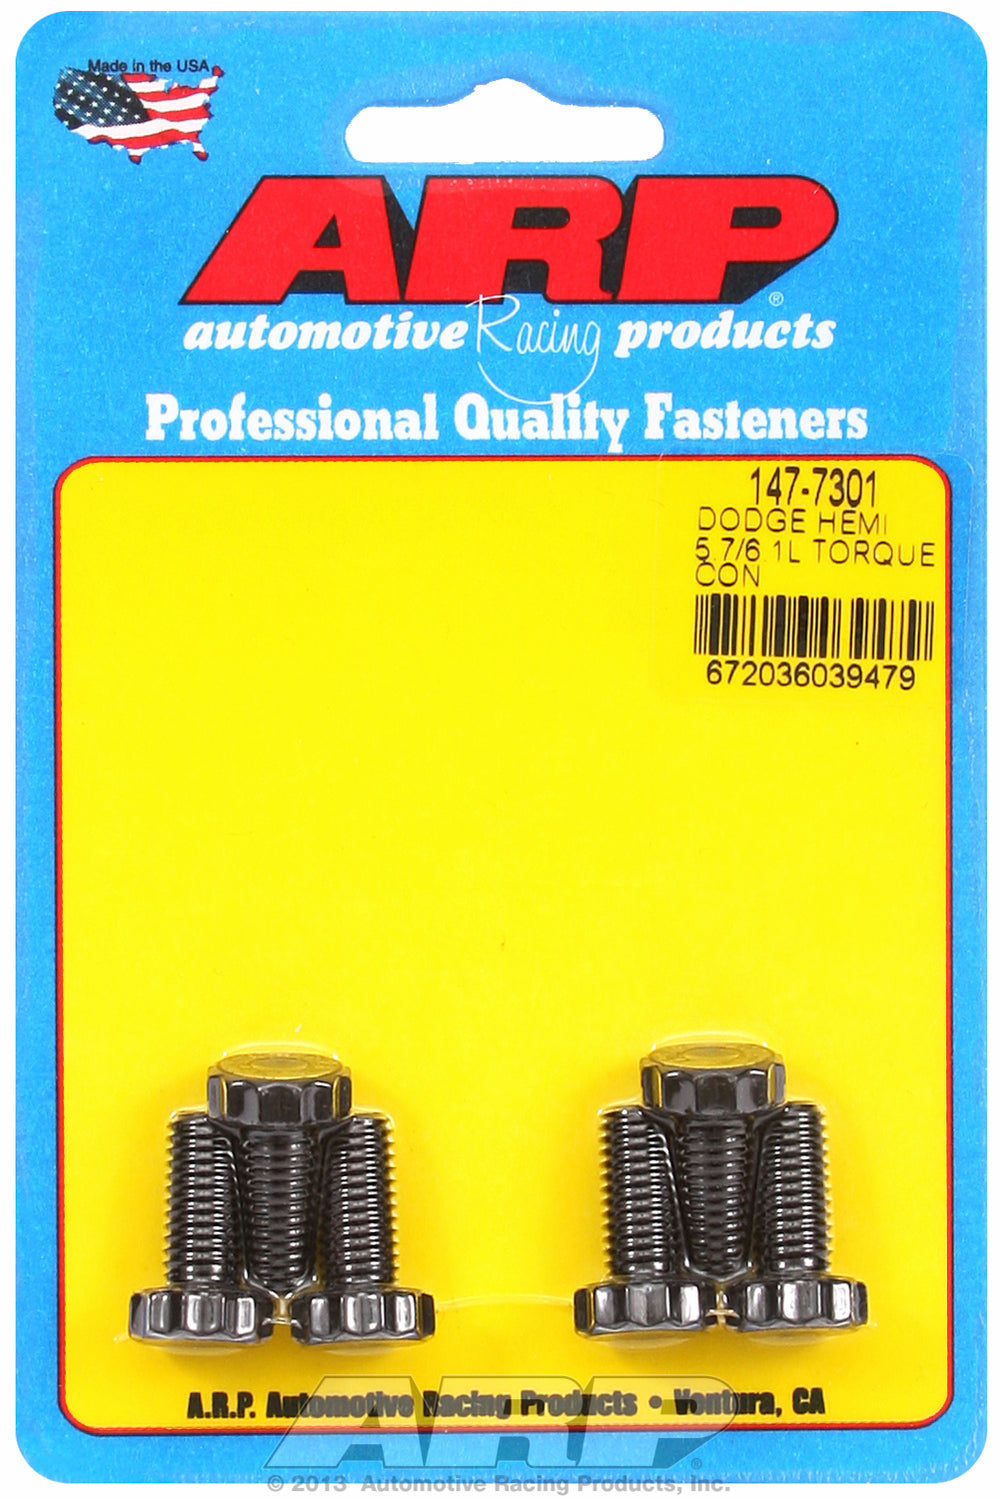 Pro Series Torque Converter Bolts for Chrysler,Dodge NAG1 five speed automatic w/ production convert